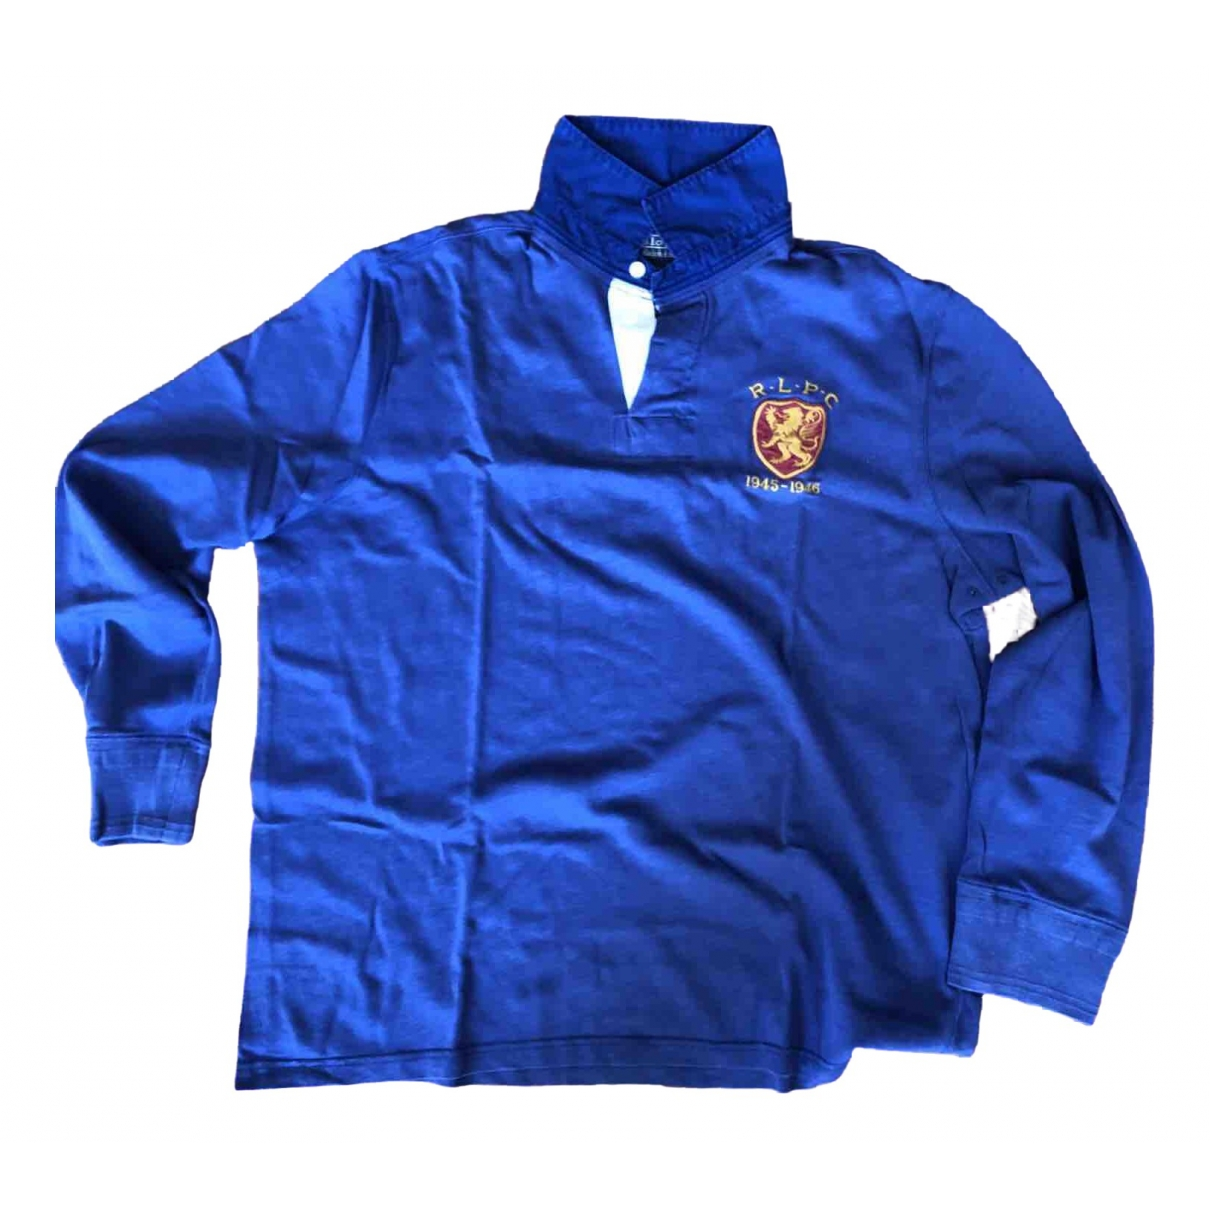 Polo Ralph Lauren Polo Rugby manches longues Poloshirts in  Blau Baumwolle